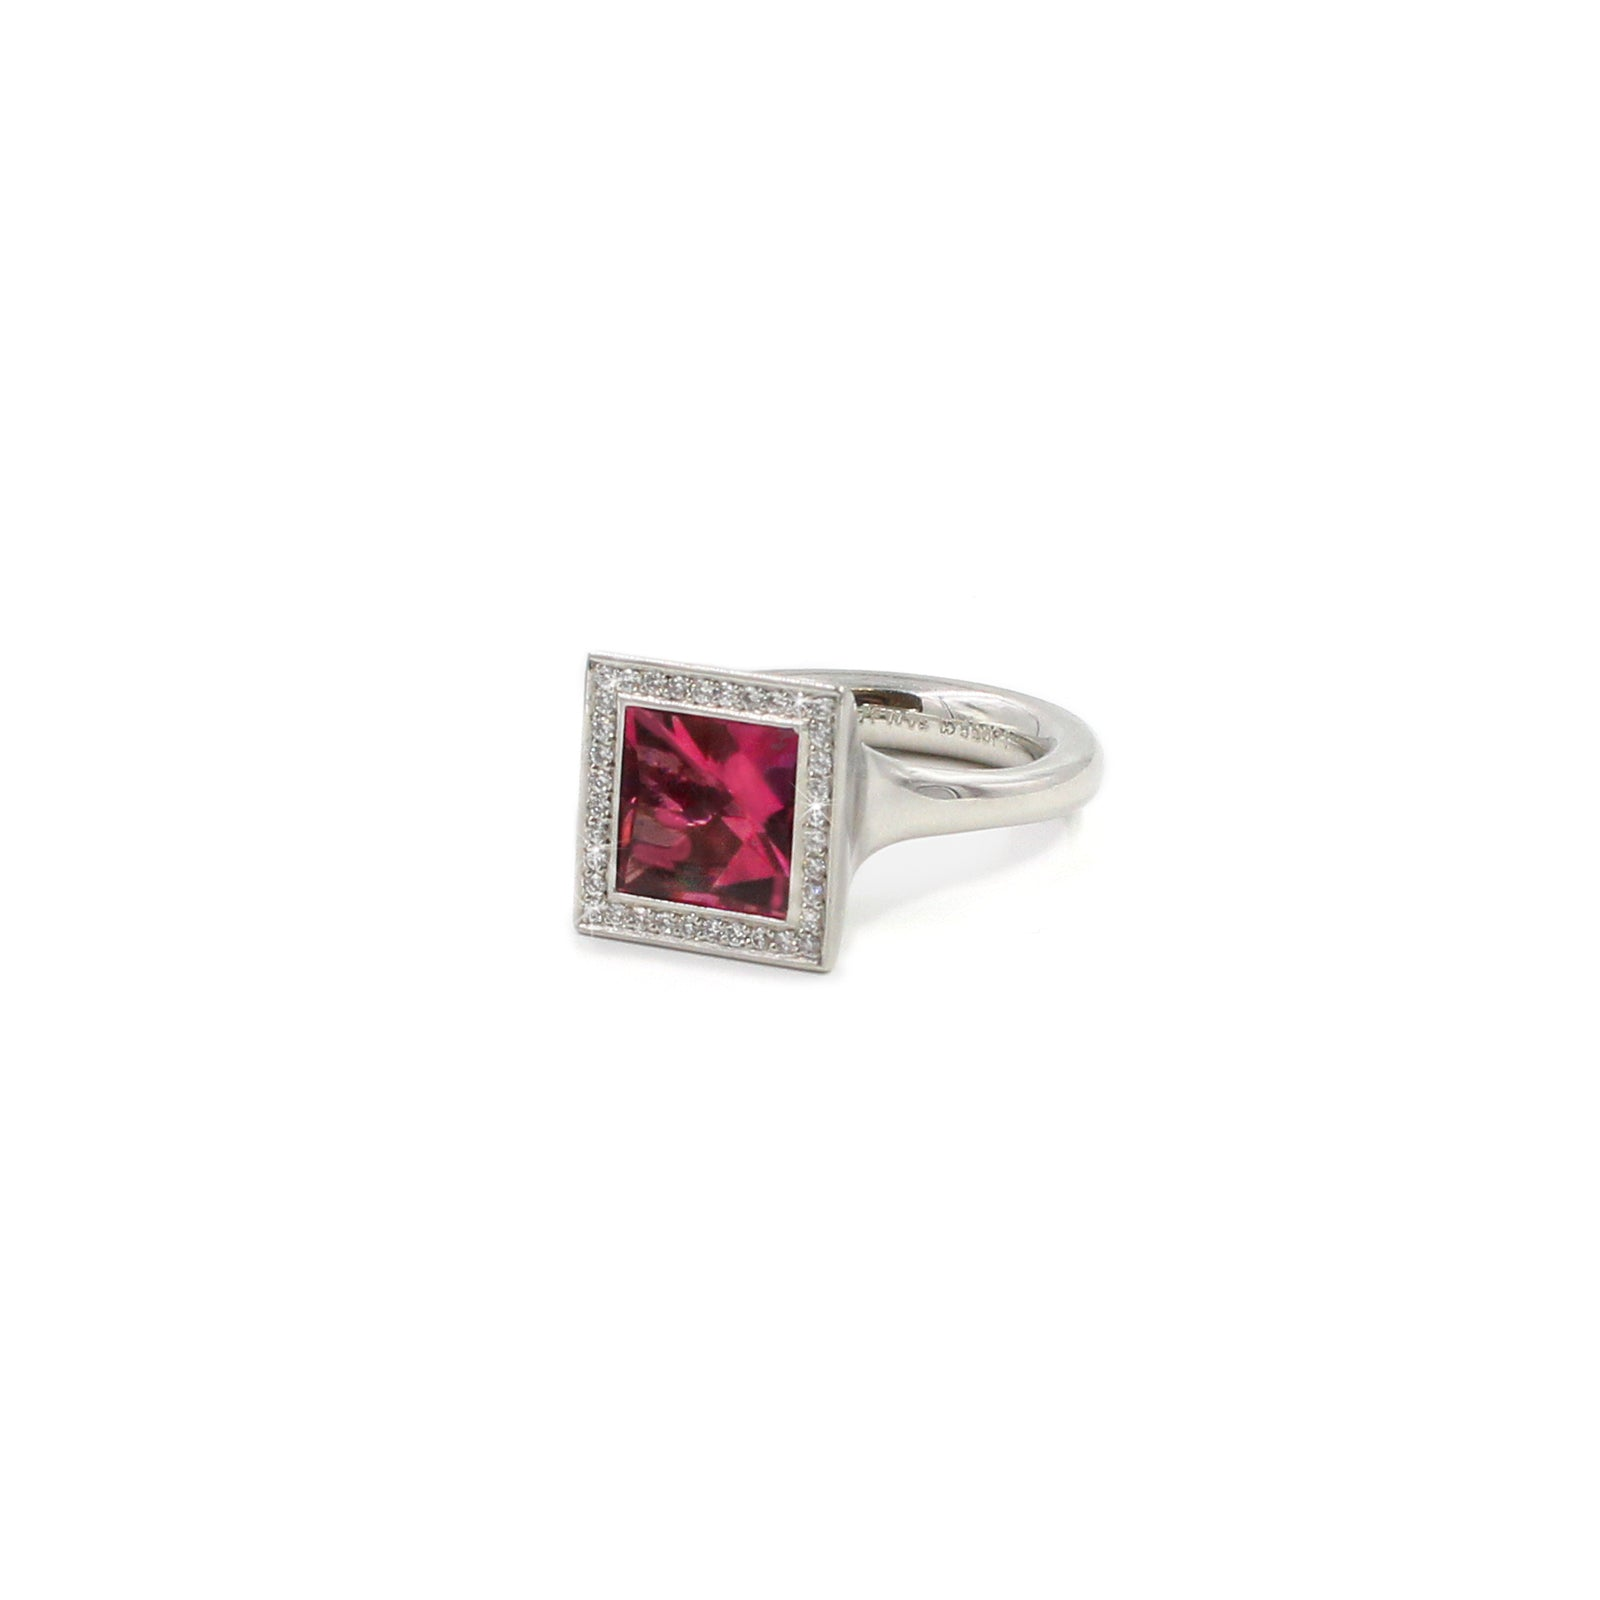 Fine Jewelry Collection: Pink Tourmaline, Diamond & Platinum Ring